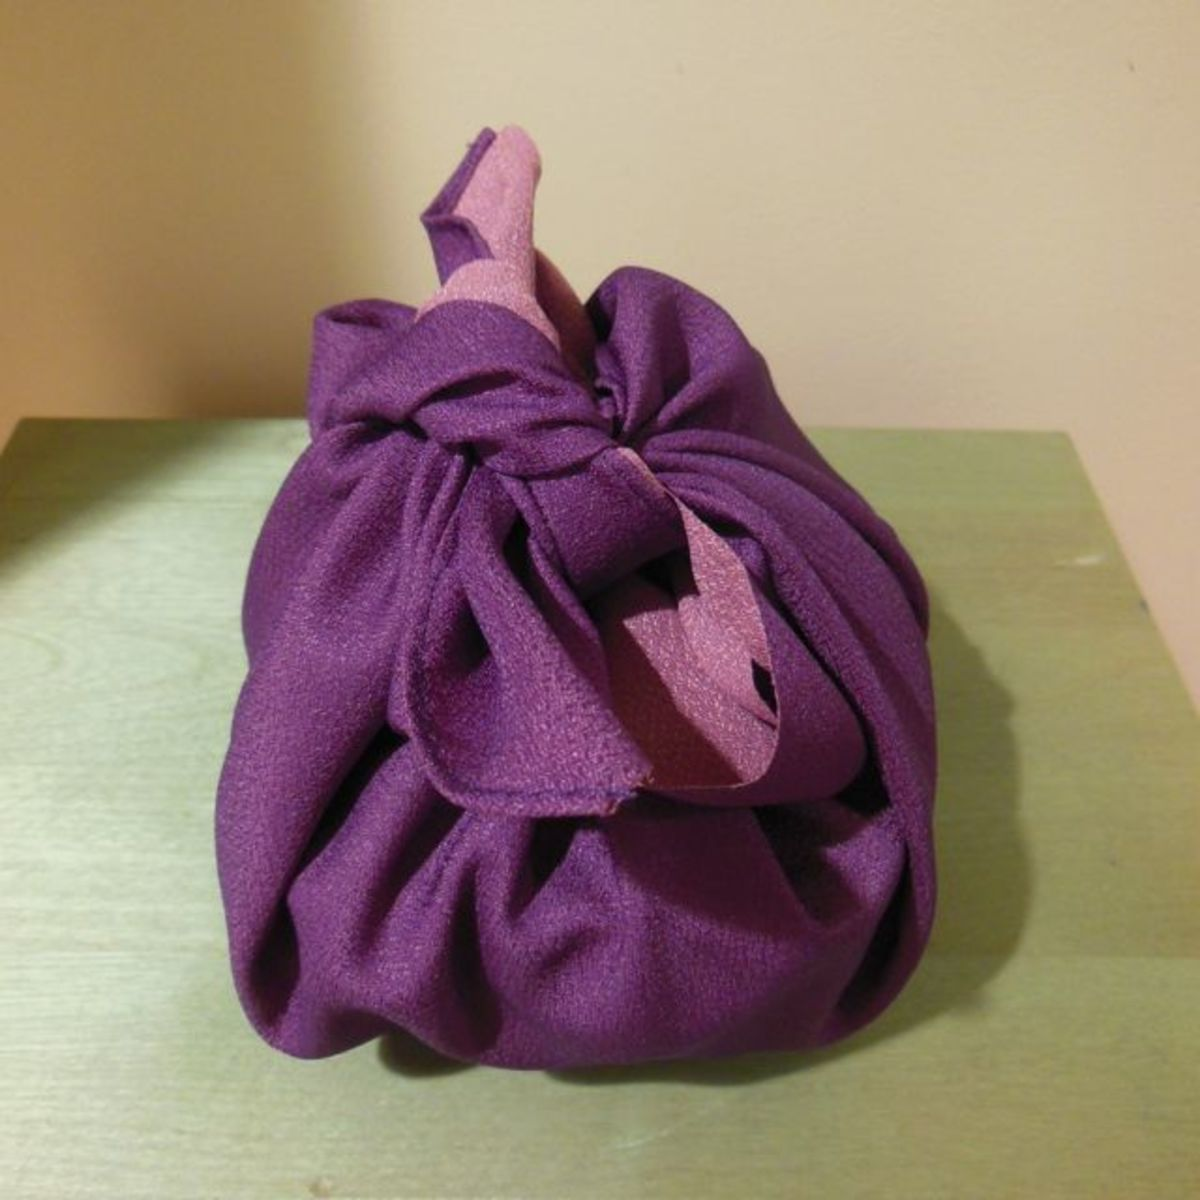 Your basic package wrap done with a cloth furoshiki.